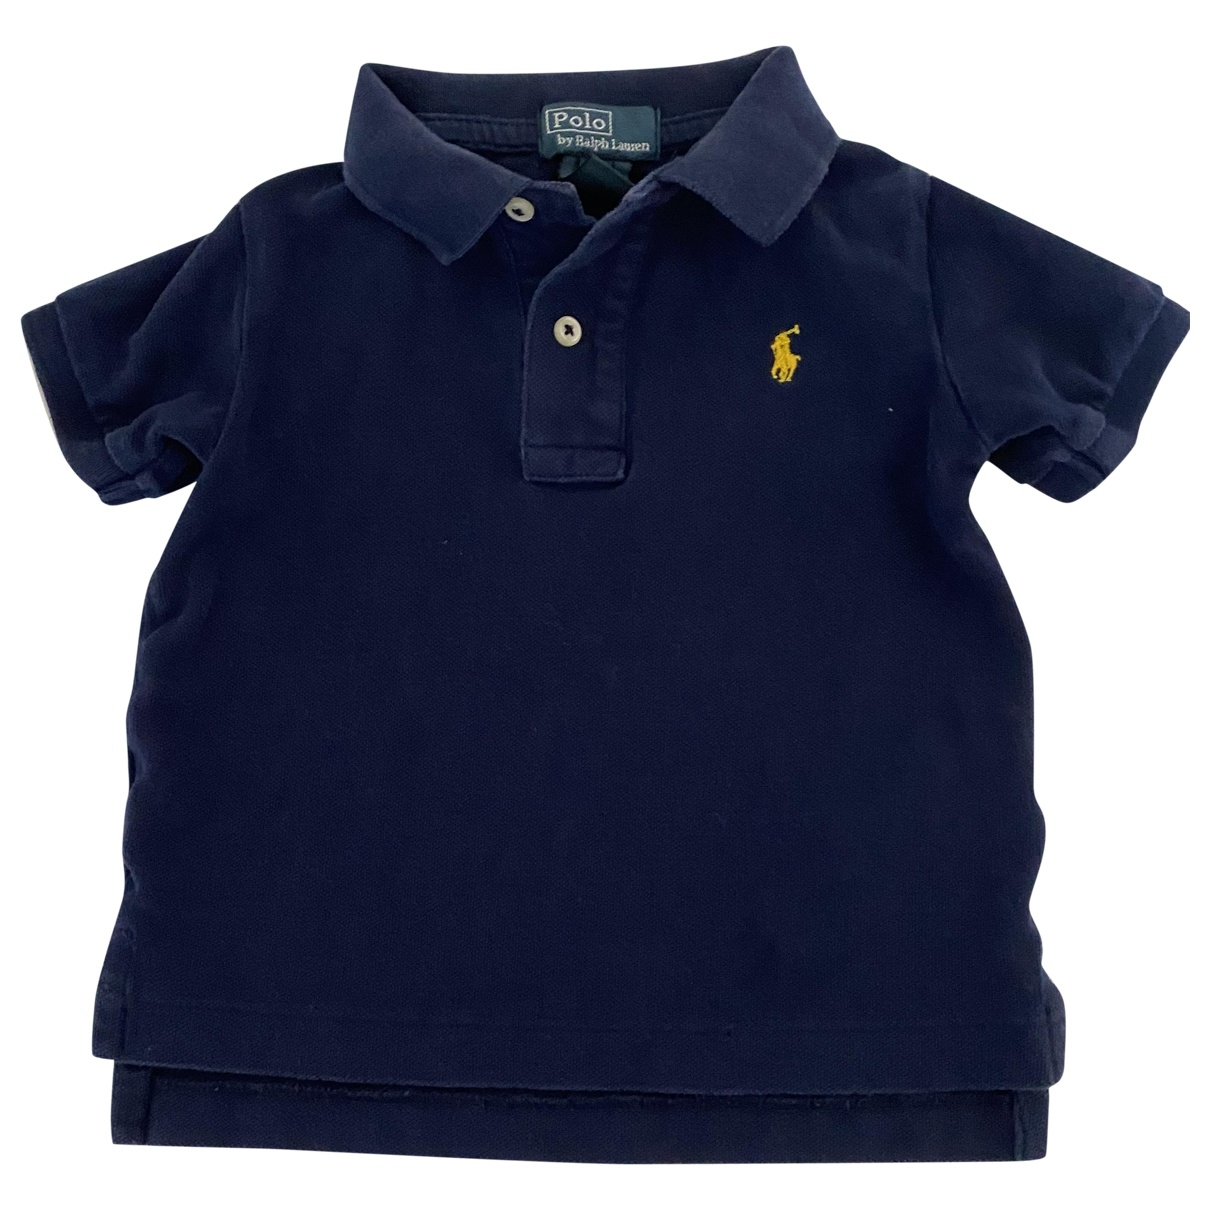 Polo Ralph Lauren \N Blue Cotton  top for Kids 18 months - until 32 inches UK